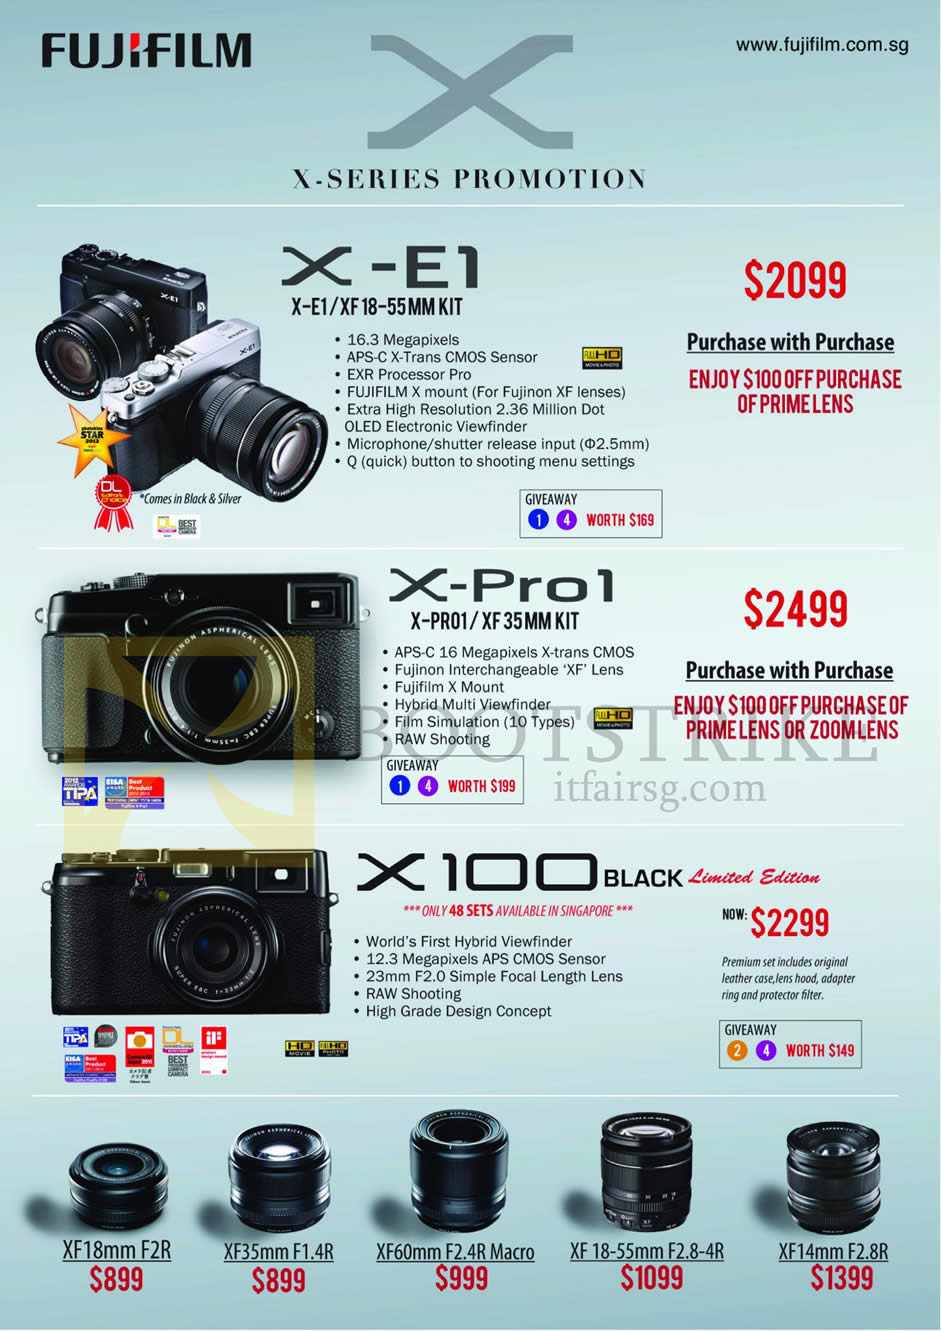 IT SHOW 2013 price list image brochure of Fujifilm Digital Cameras X-Series X-E1, X-Pro1, X100 Black Limited Edition, Lenses